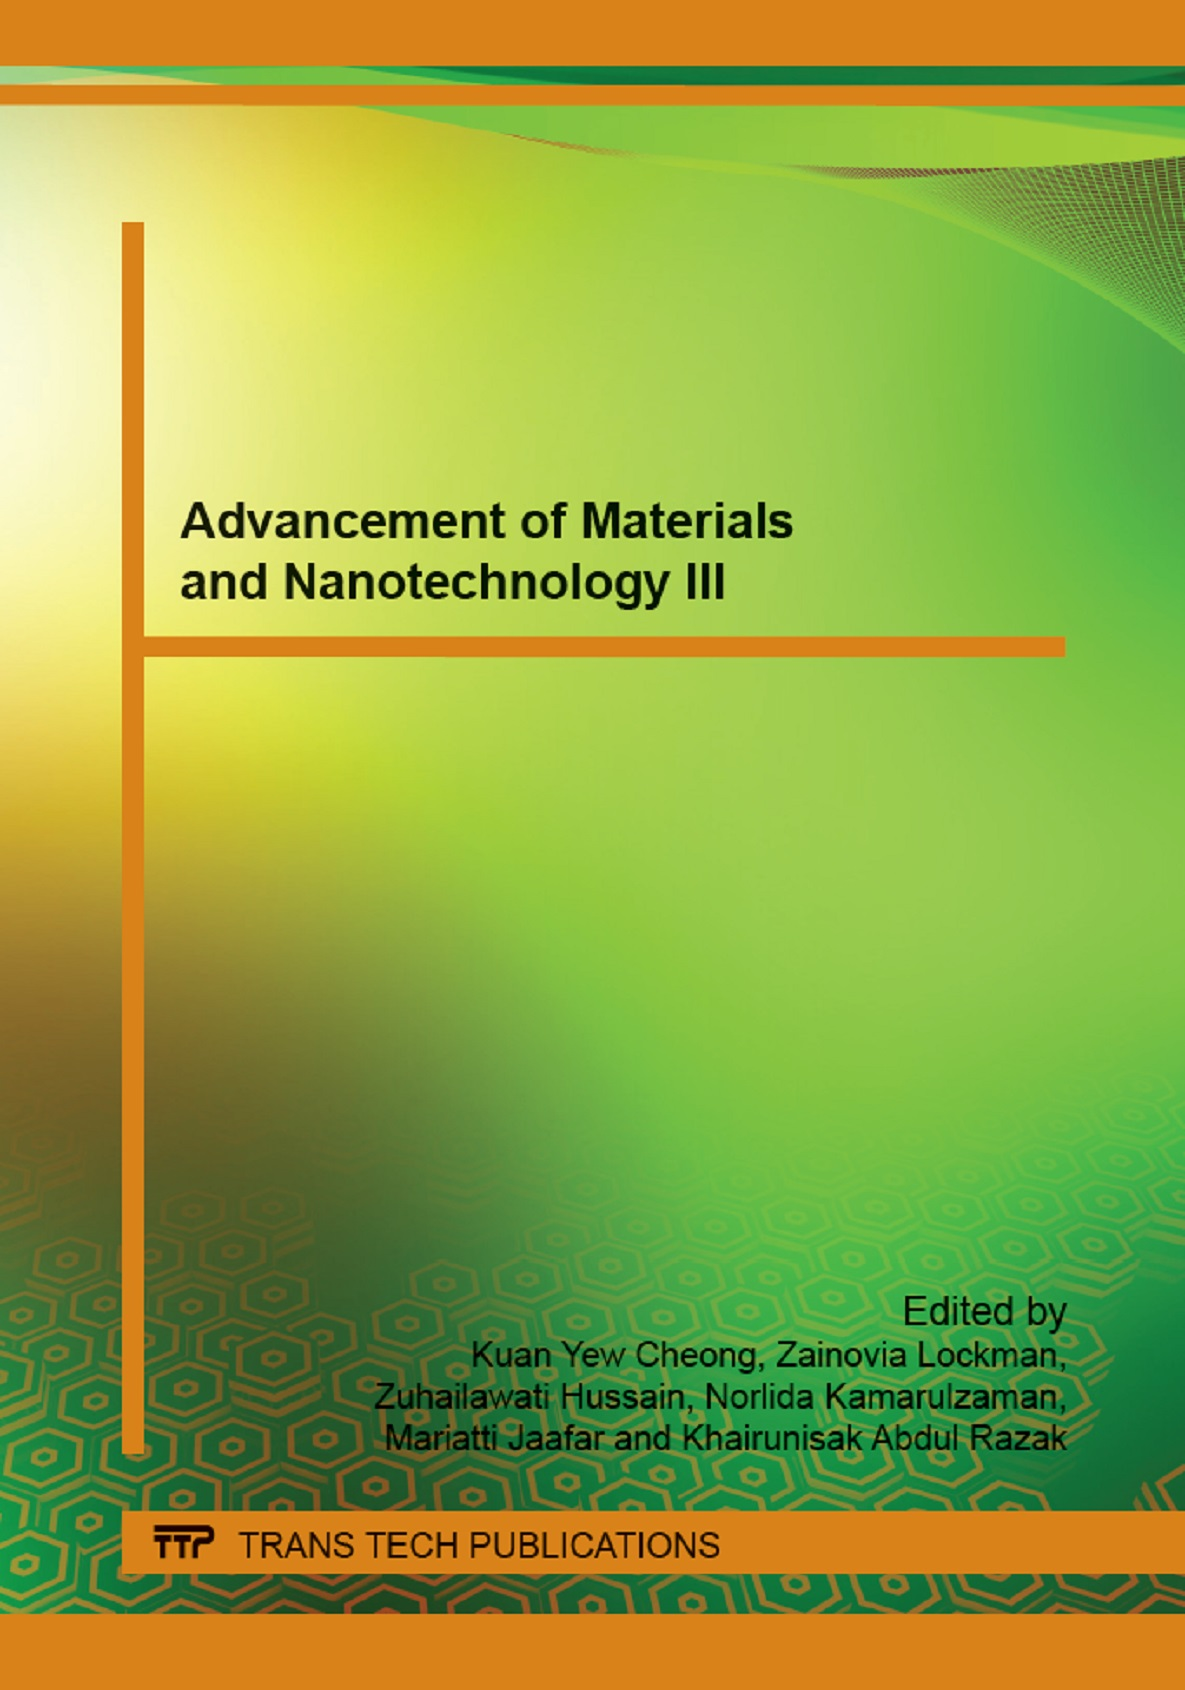 Advancement of Materials and Nanotechnology III